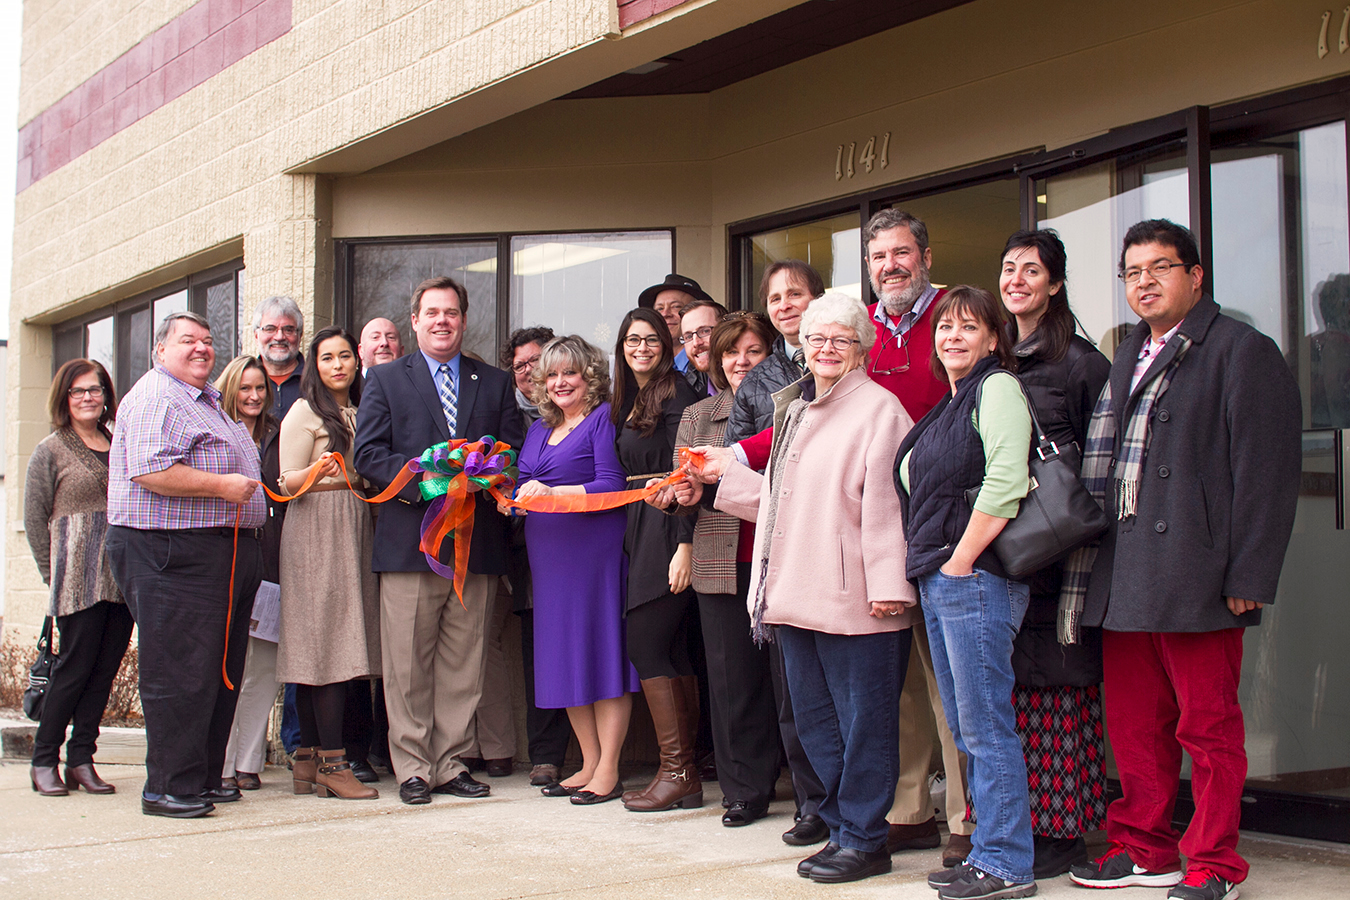 Ribbon cutting with Geneva Mayor Kevin Burns and so many do-over,me friends. December 1, 2014.